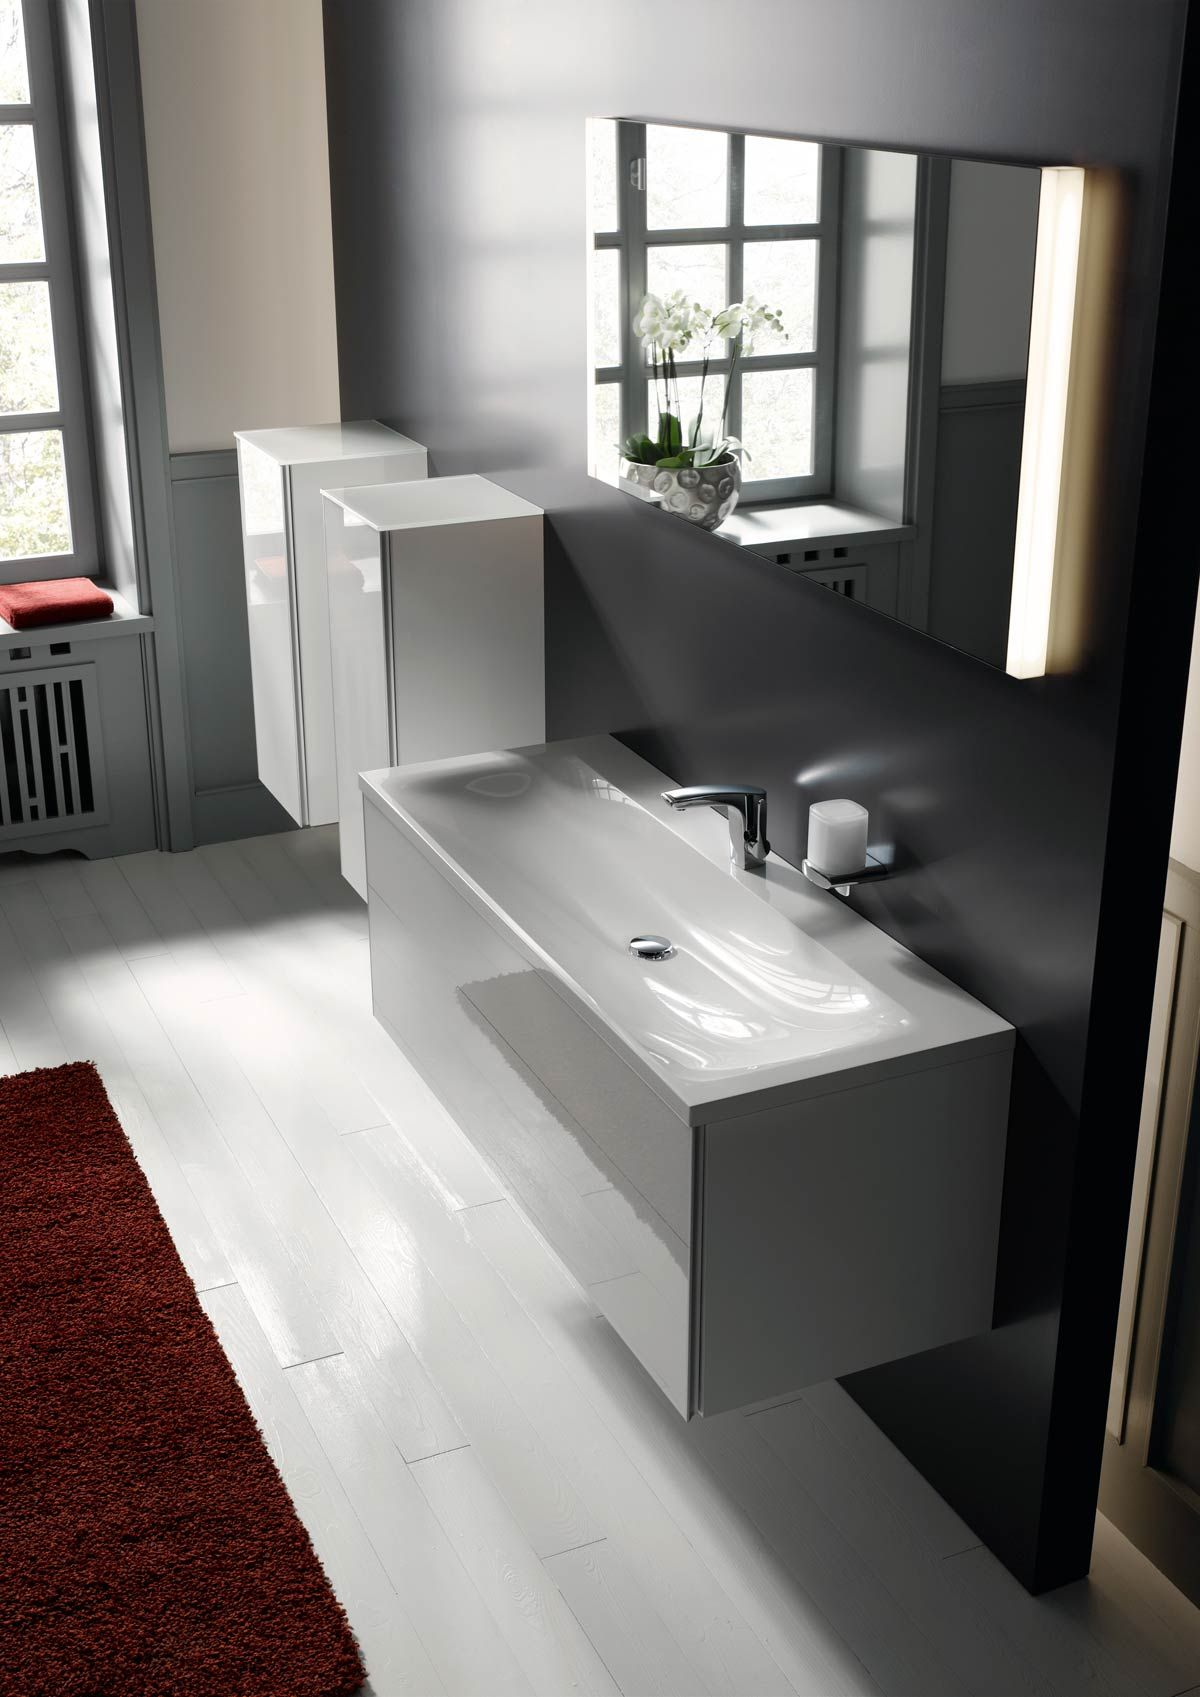 we supply a wide range of quality bathroom mirror cabinets from leading manufactures including keuco vado and laufen - Bathroom Cabinets Keuco